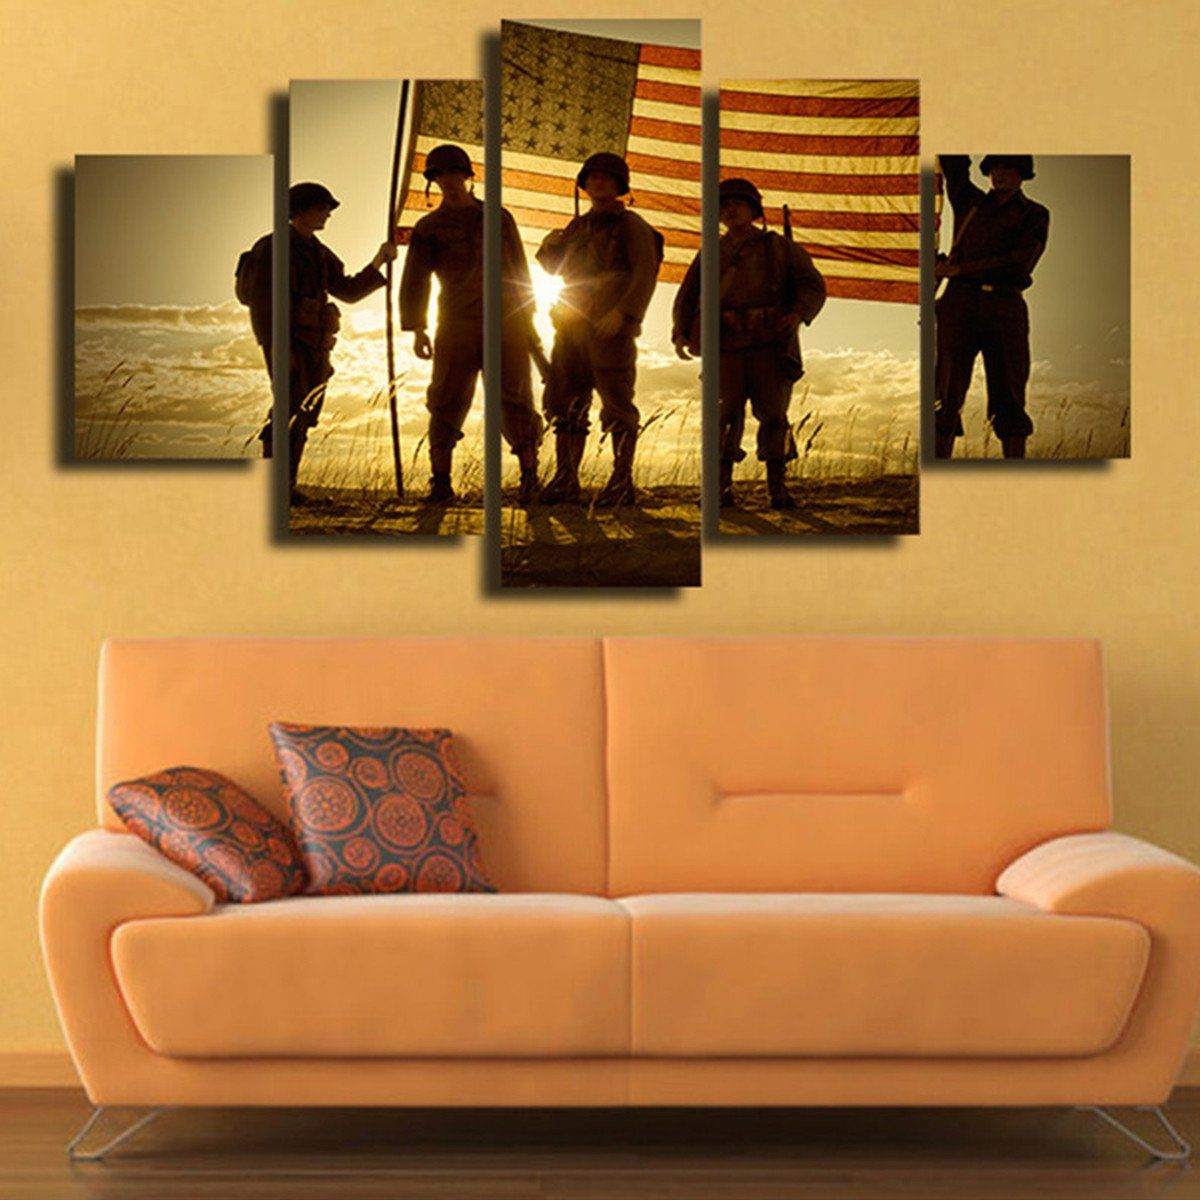 Military Soldiers At Sunset Wall Art Print On Canvas Large Canvas Prints Wall Art Canvas Painting Canvas Art Wall Decor